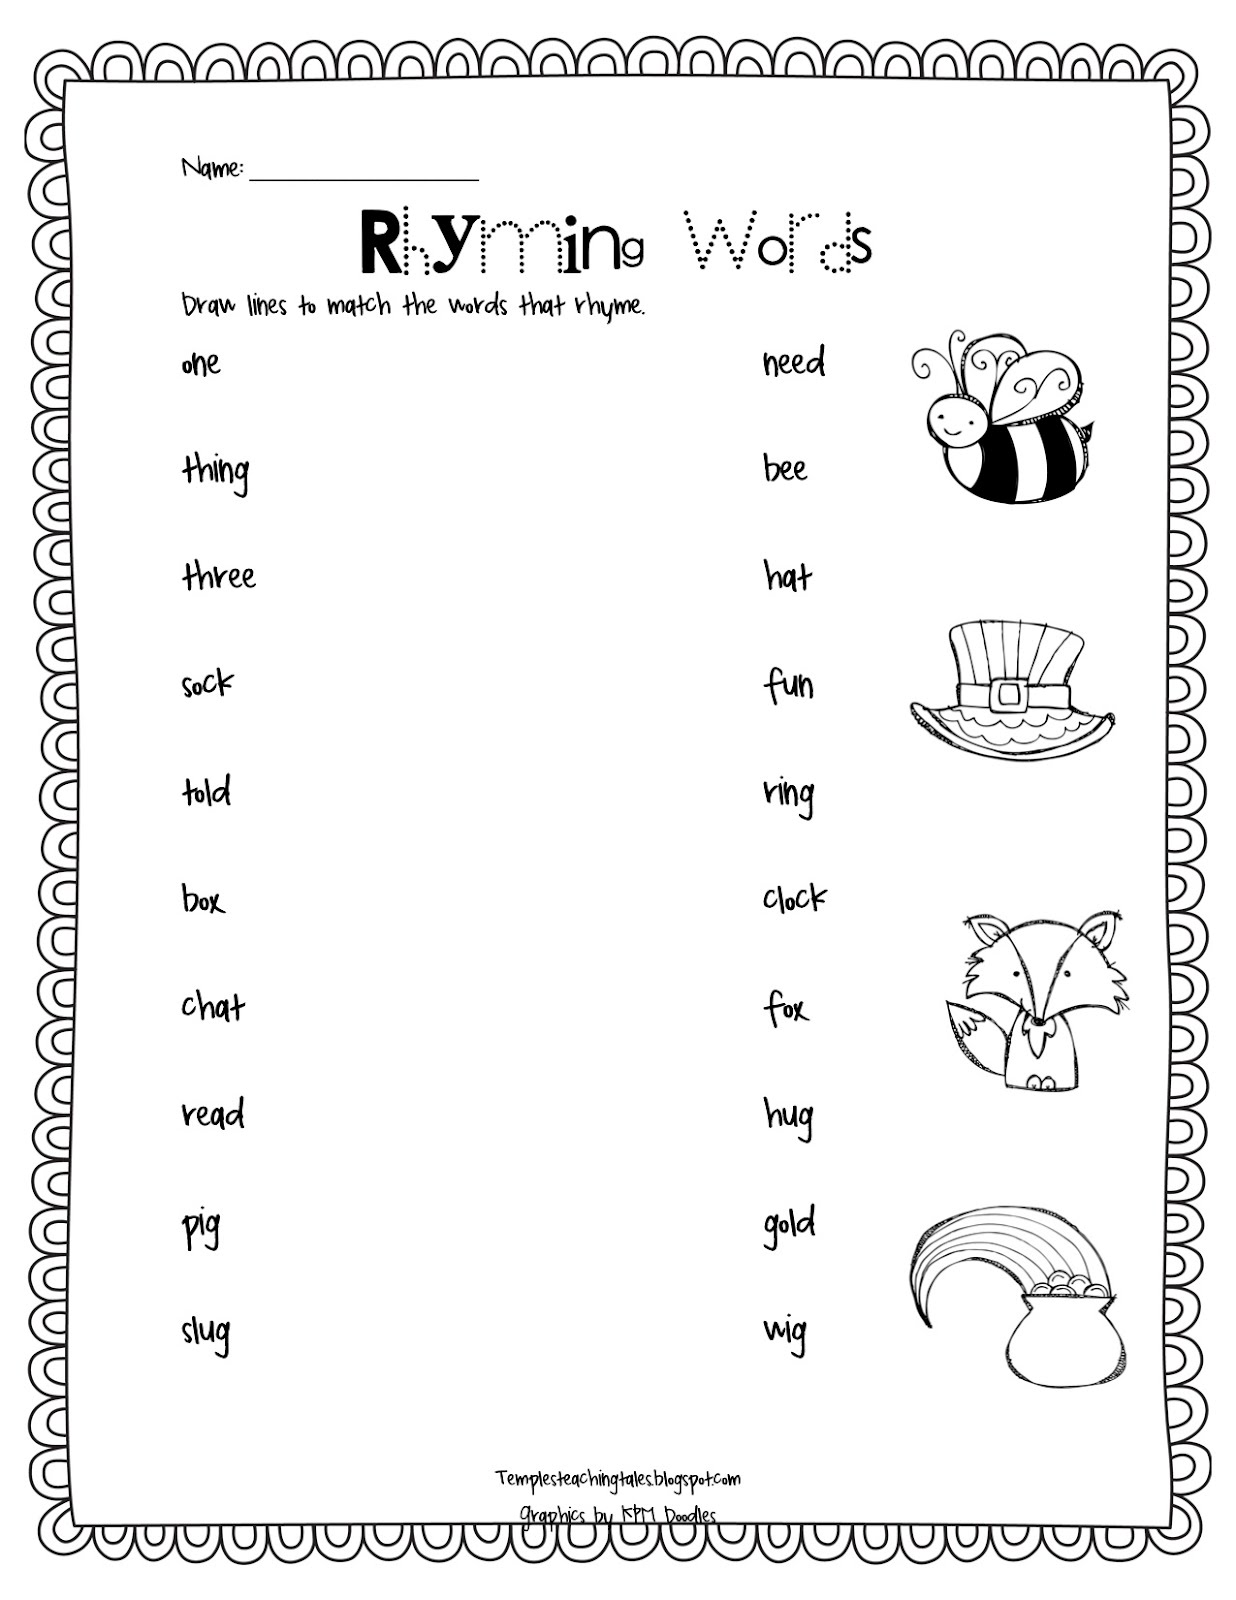 3 Letter Rhyming Words Worksheets - Coffemix